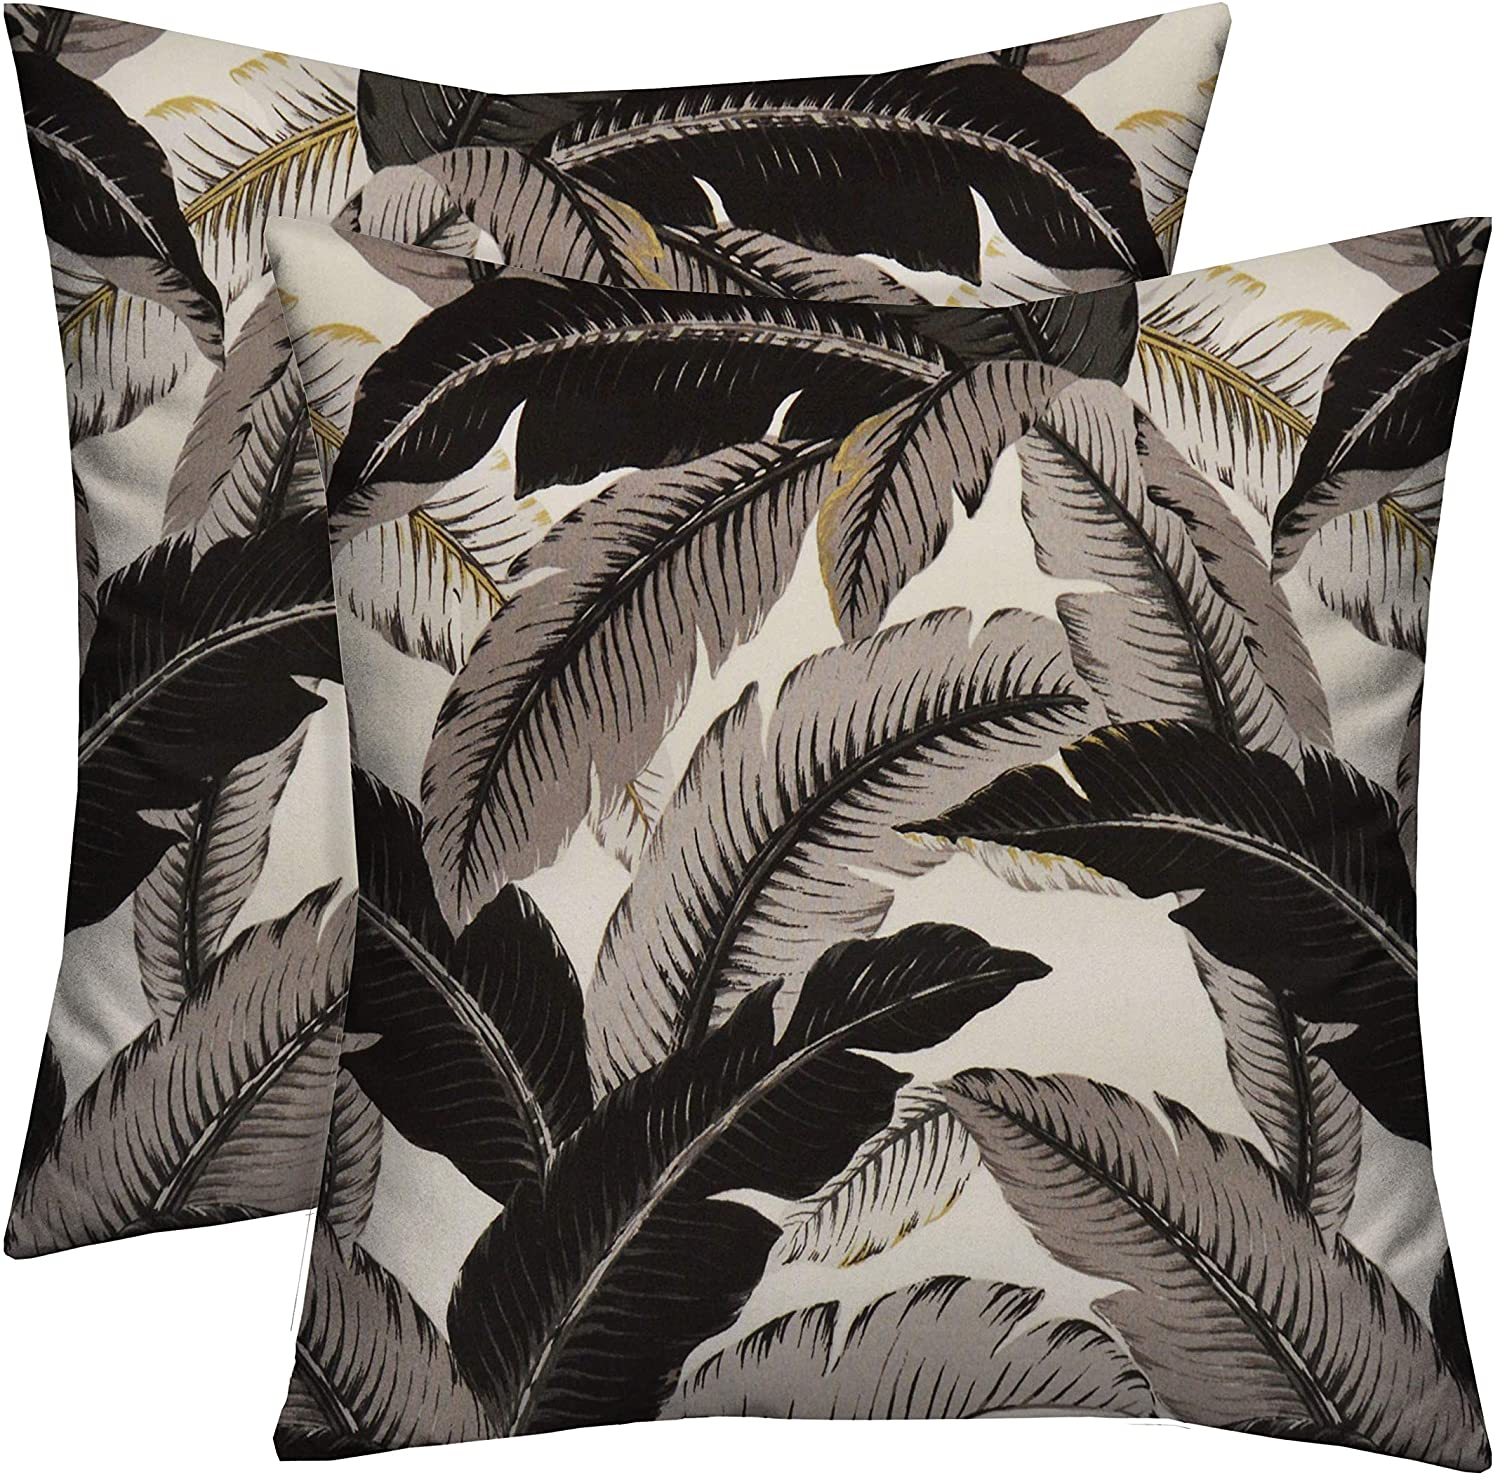 Rsh Décor Indoor Outdoor Made With Tommy Bahama Prints Set Of 2 Square Pillows Weather Resistant 17 X 17 Swaying Palms Onyx Black Tropical Leaves Walmart Com Walmart Com